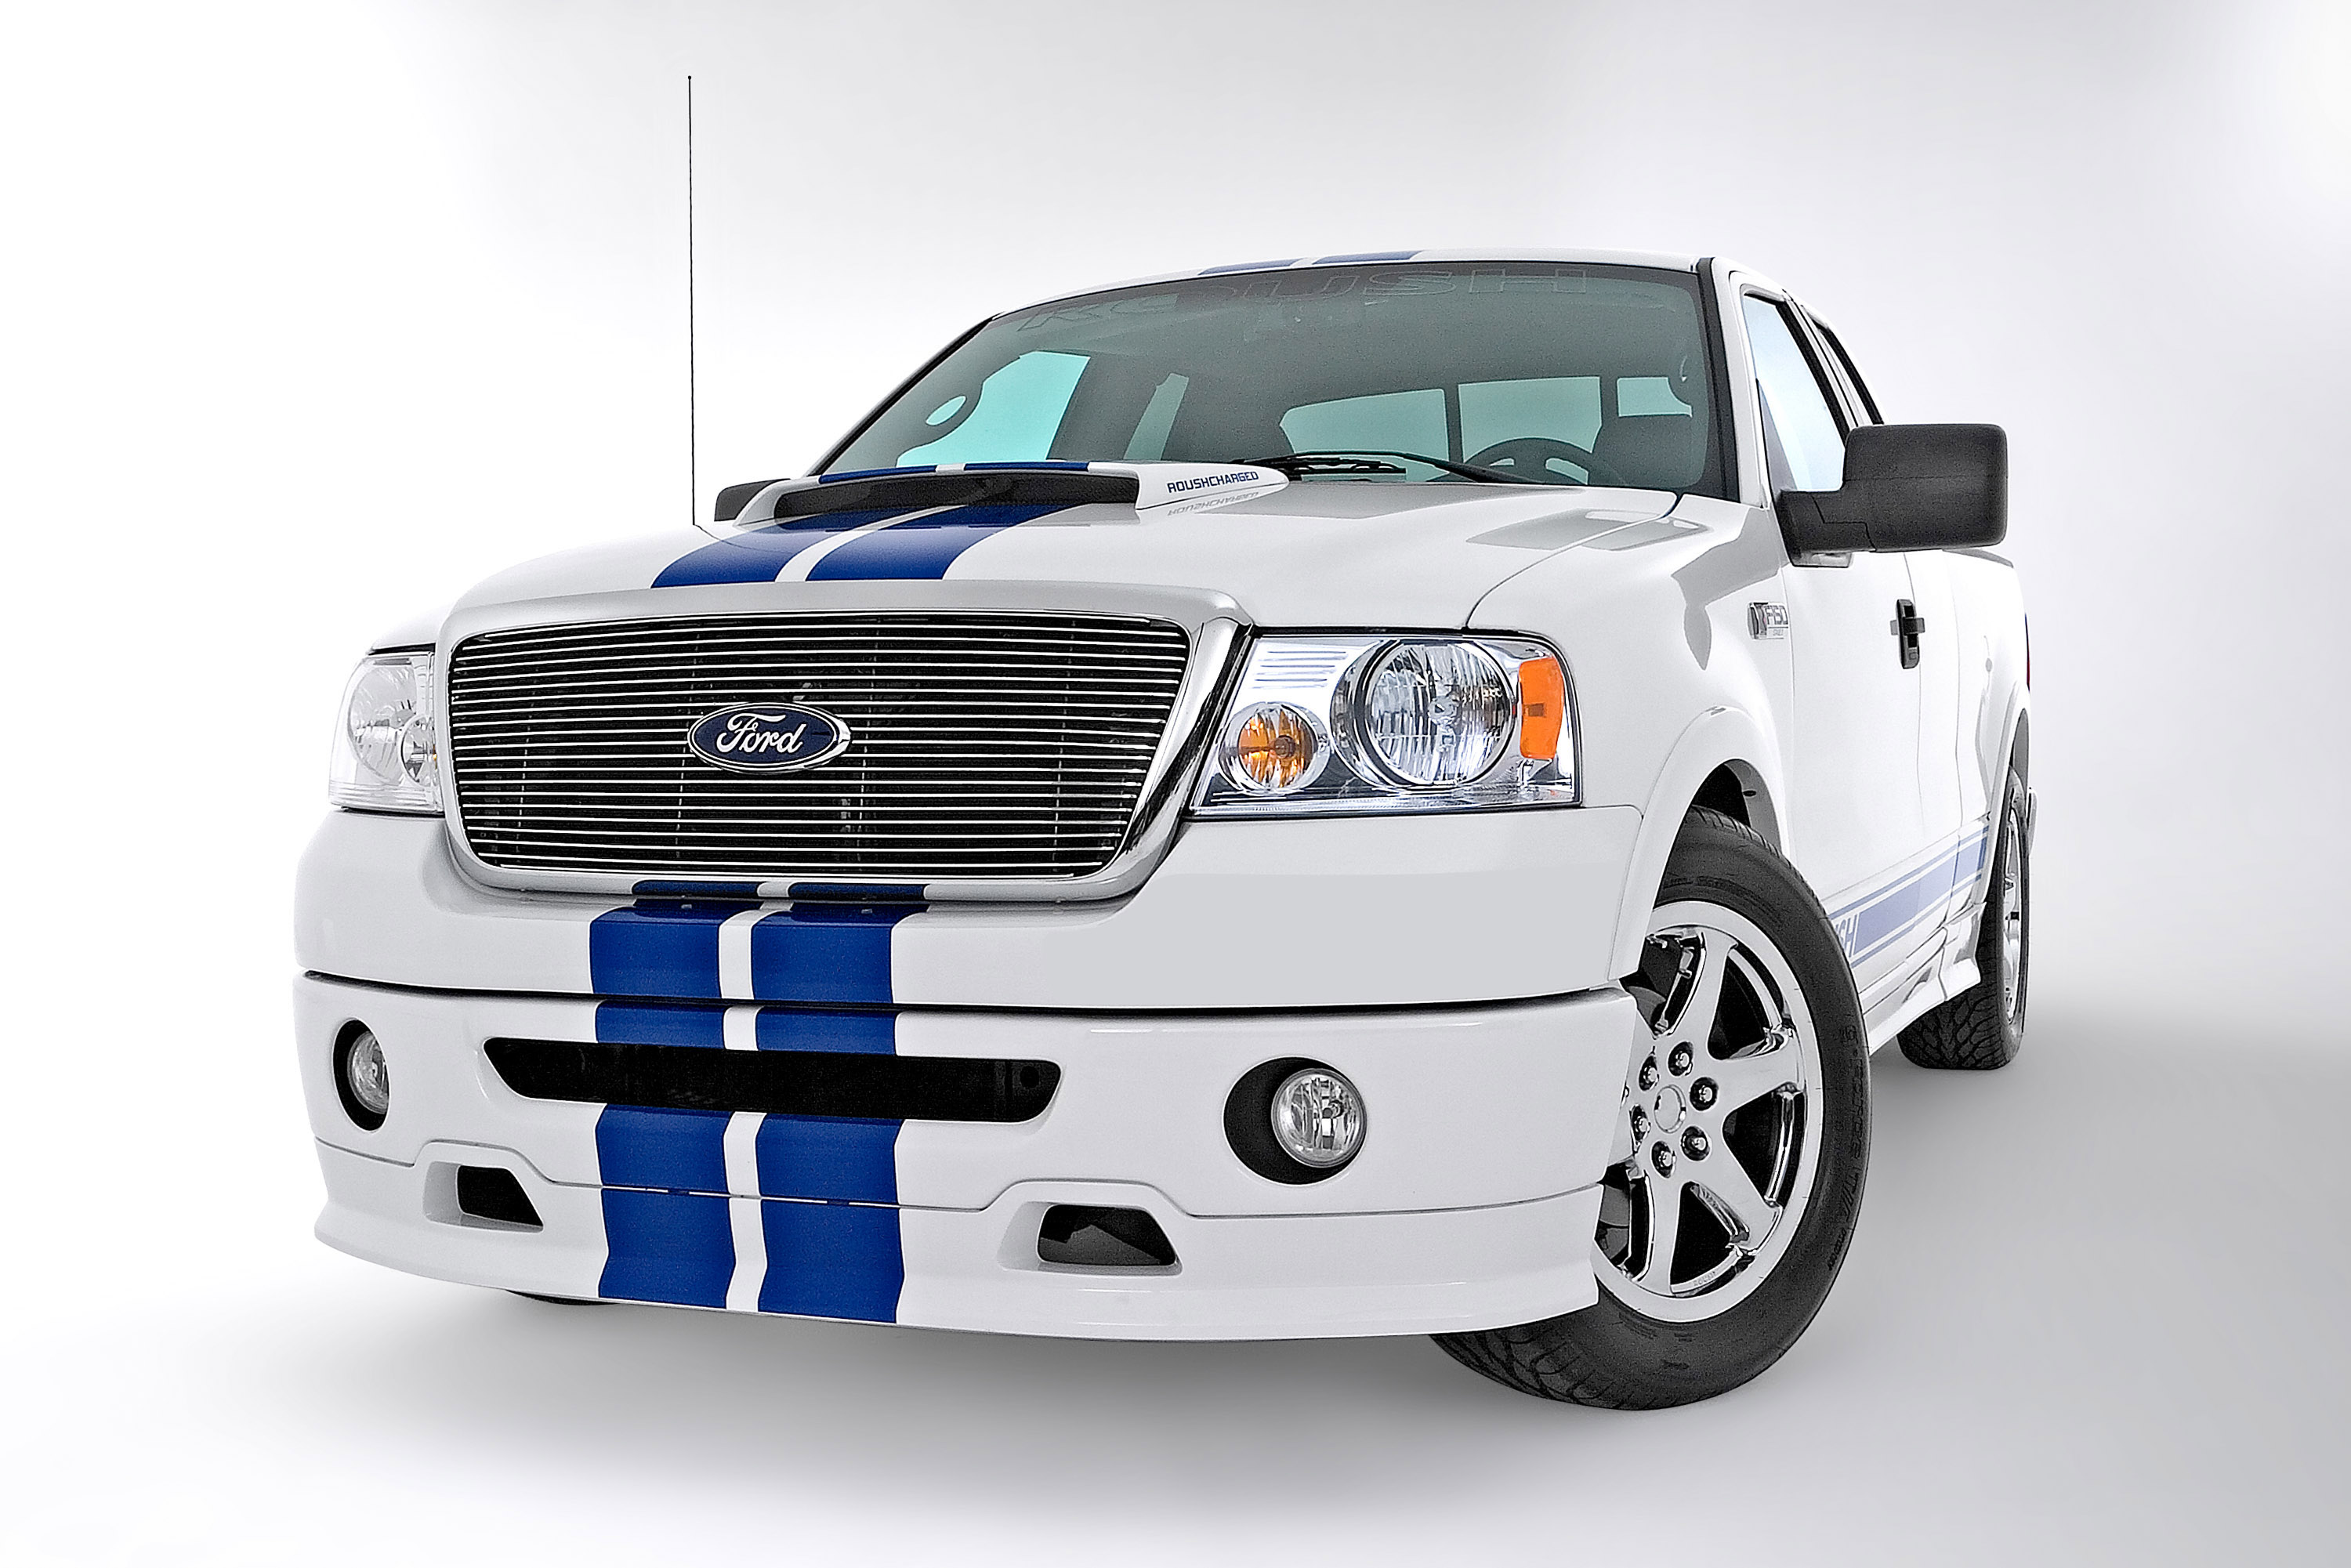 2007 roush stage 3 ford f 150 review 2013 car reviews auto. Black Bedroom Furniture Sets. Home Design Ideas